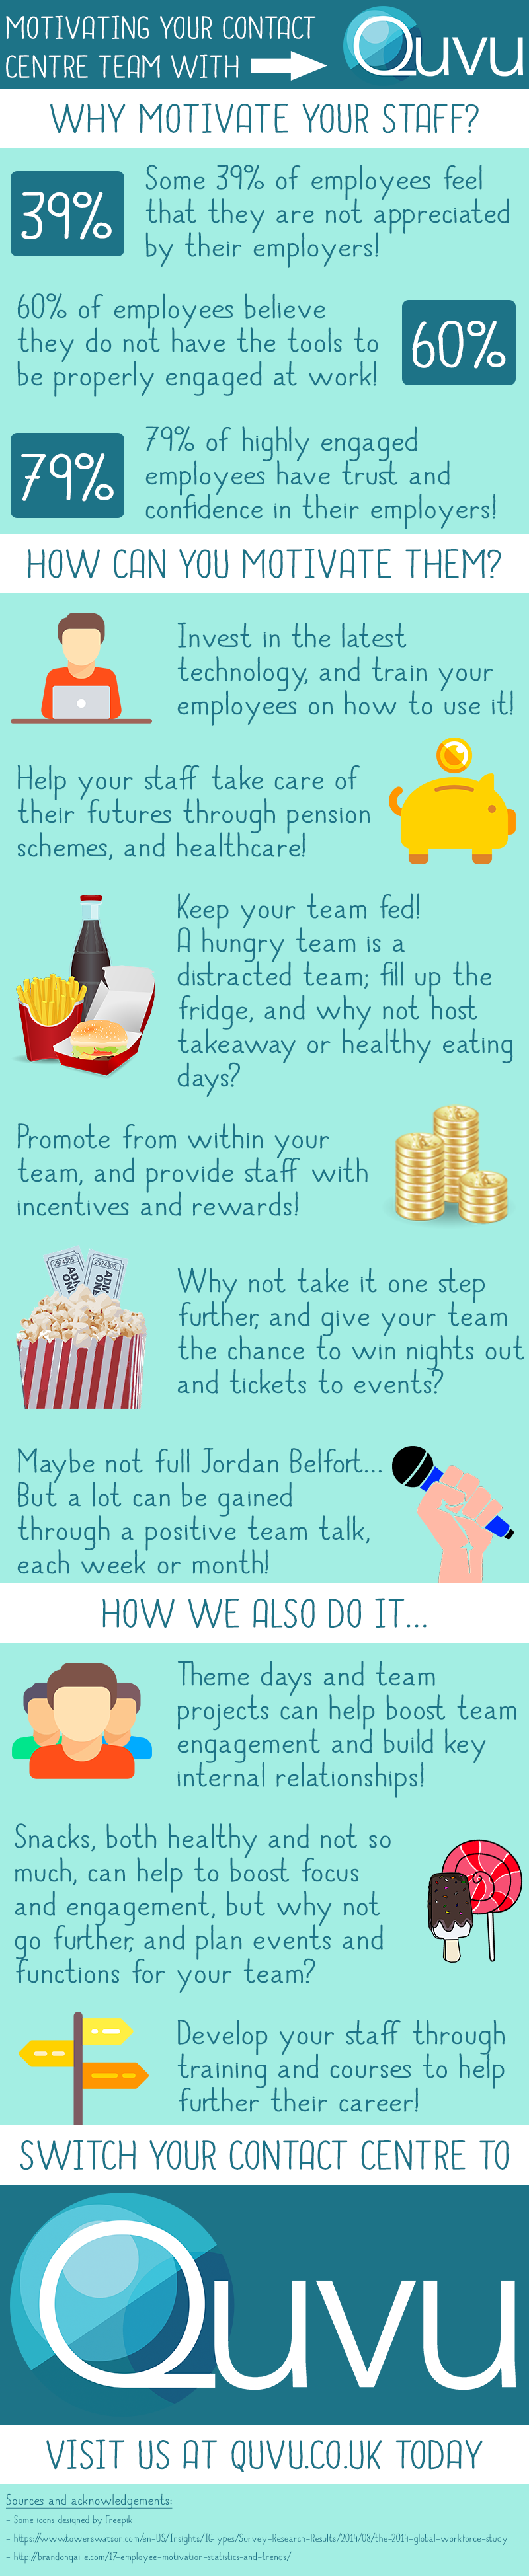 Quvu Motivation infographic